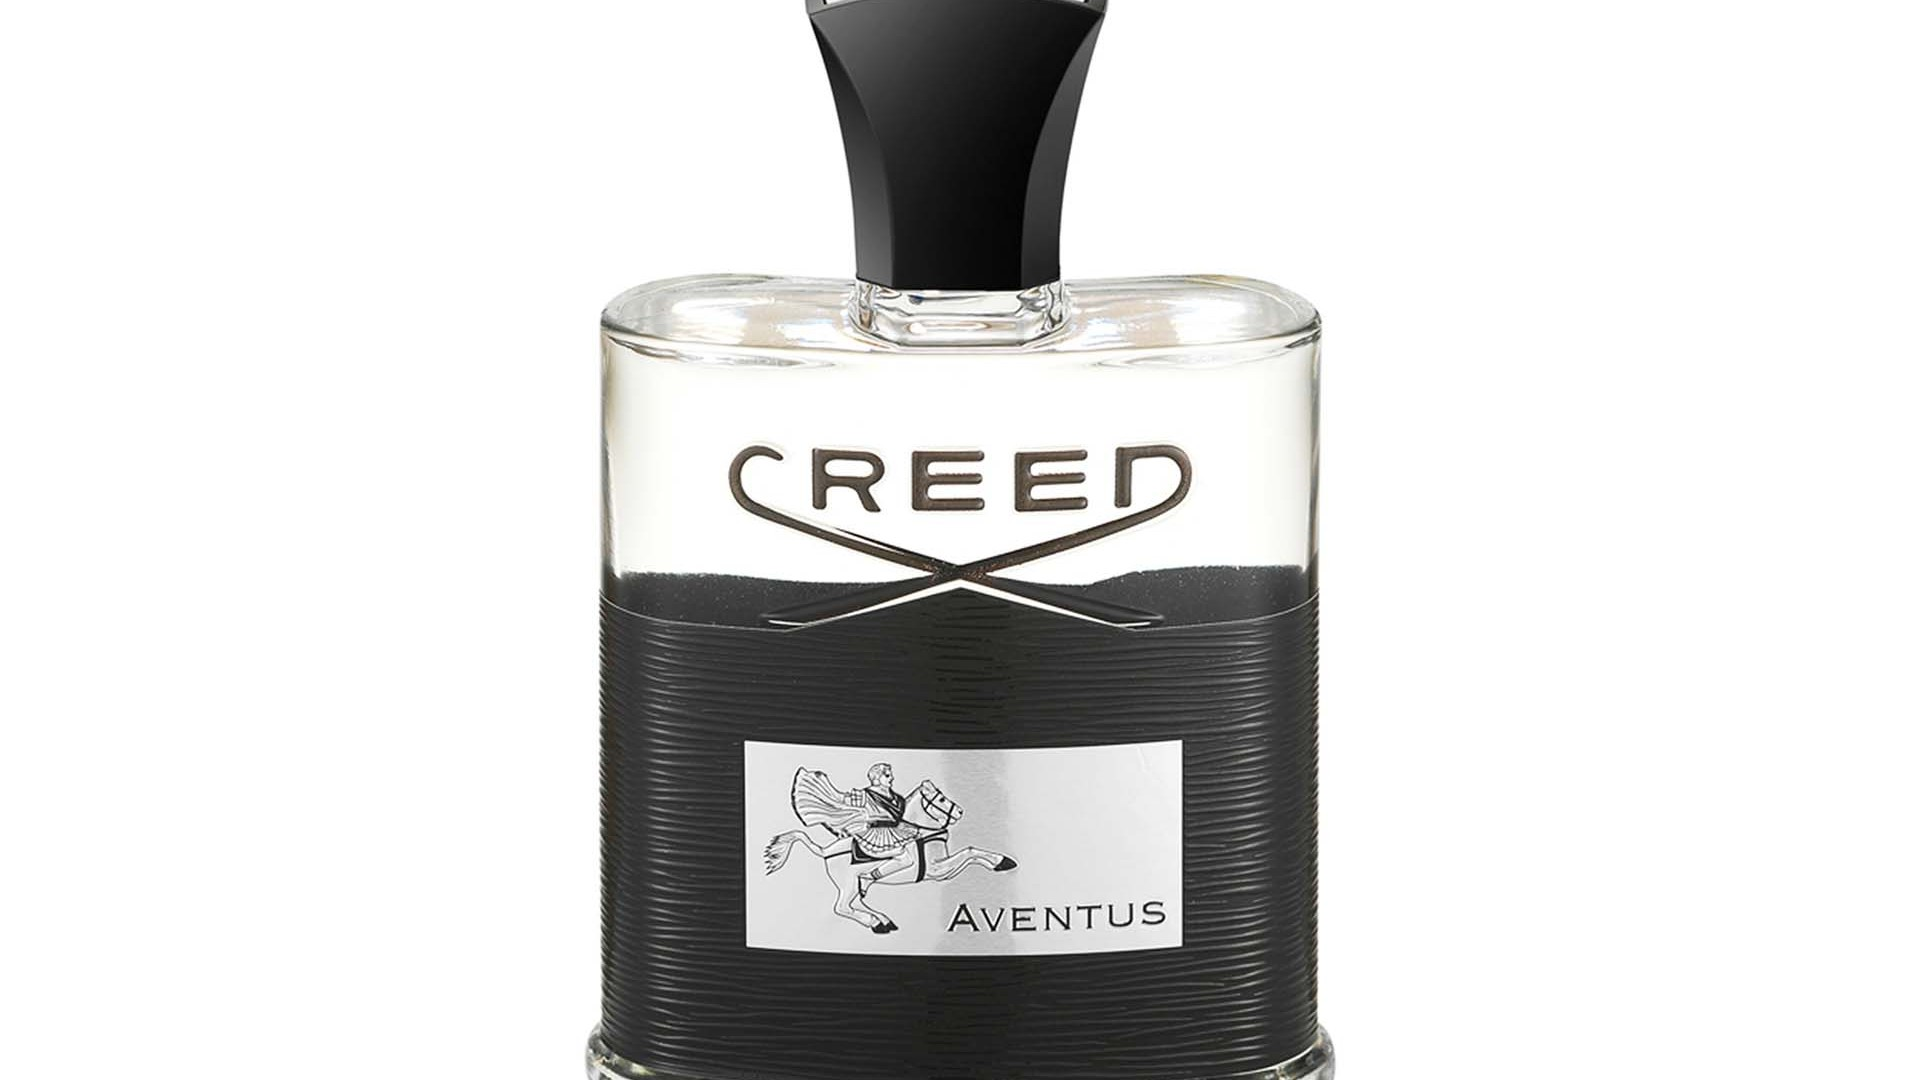 Aventus by Creed mens fragrance